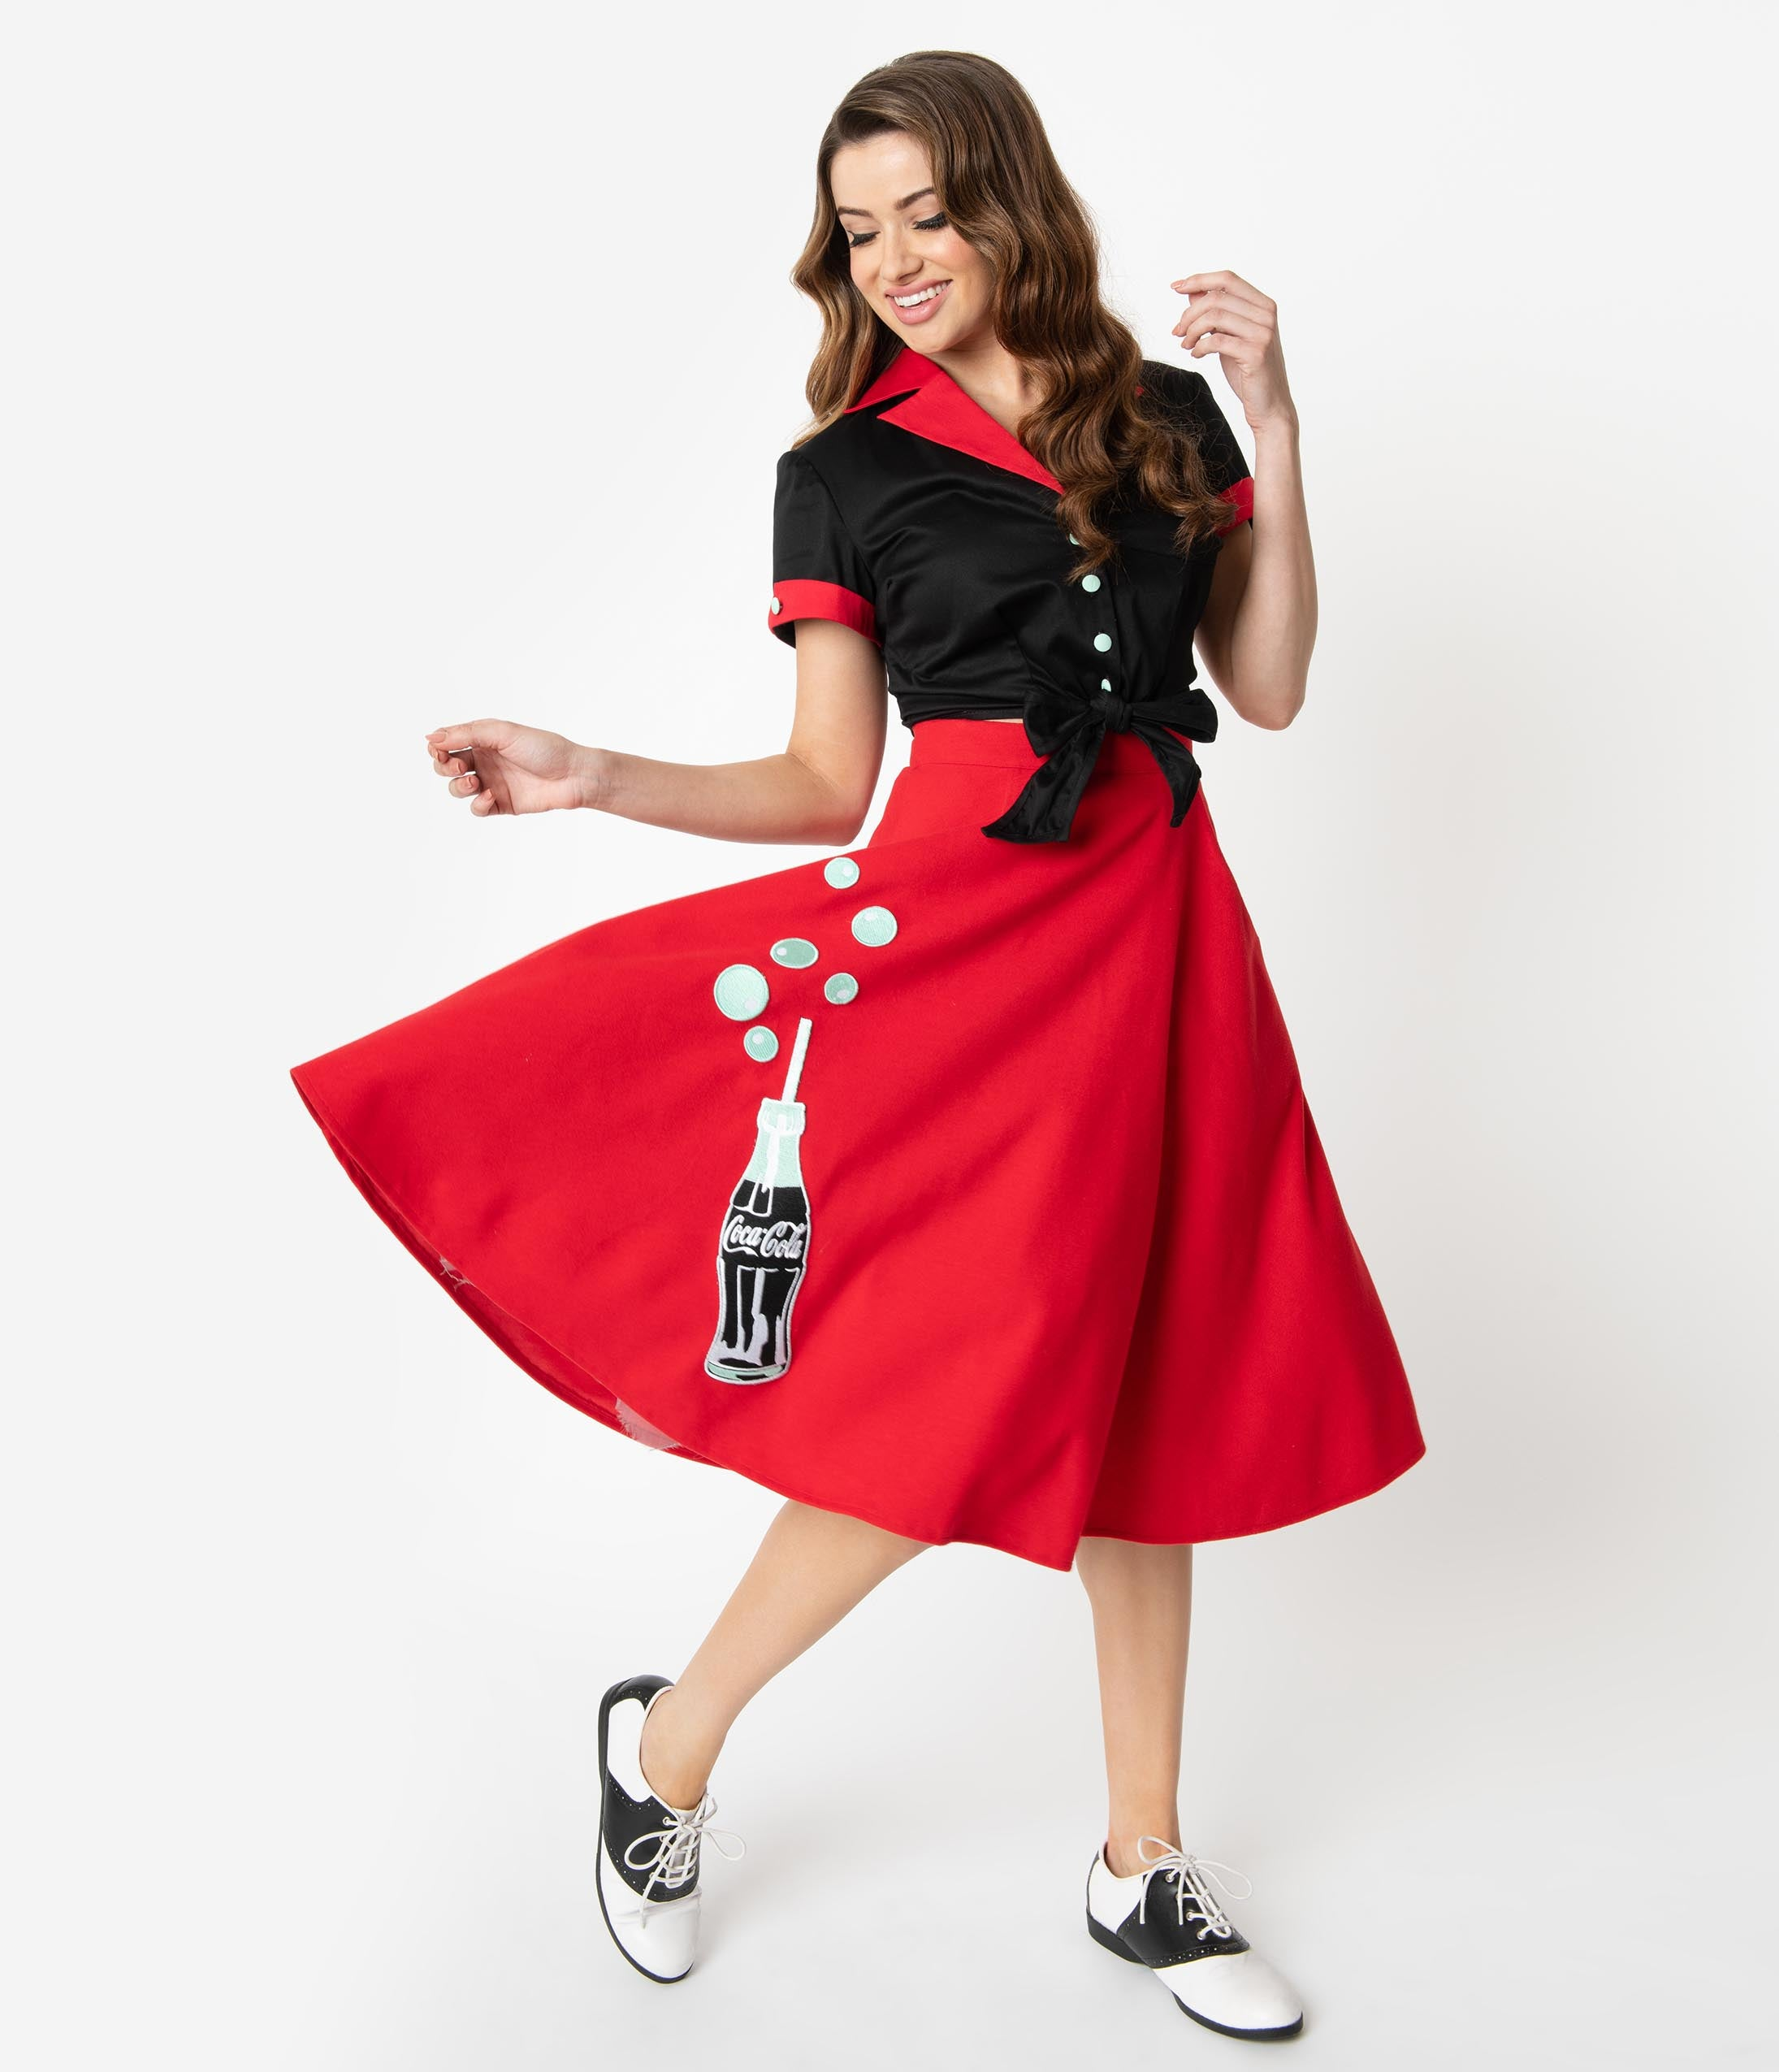 Retro Skirts: Vintage, Pencil, Circle, & Plus Sizes Coca-Cola Collection By Unique Vintage 1950S Red Cola Bottle Bubbly Swing Skirt $78.00 AT vintagedancer.com